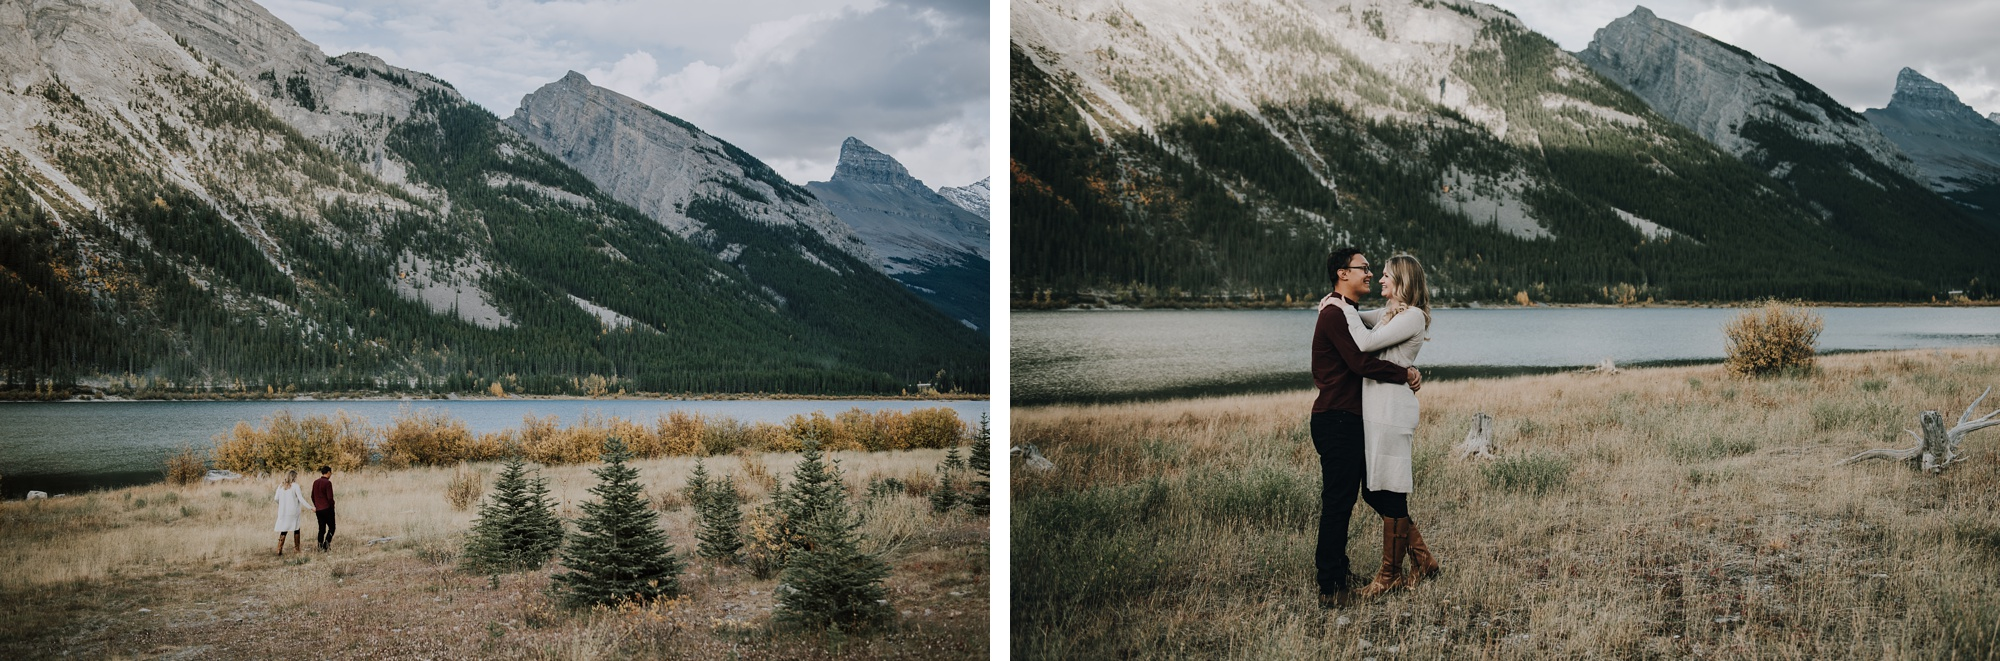 couple embrace and kiss in the mountains during Kananaskis engagement session